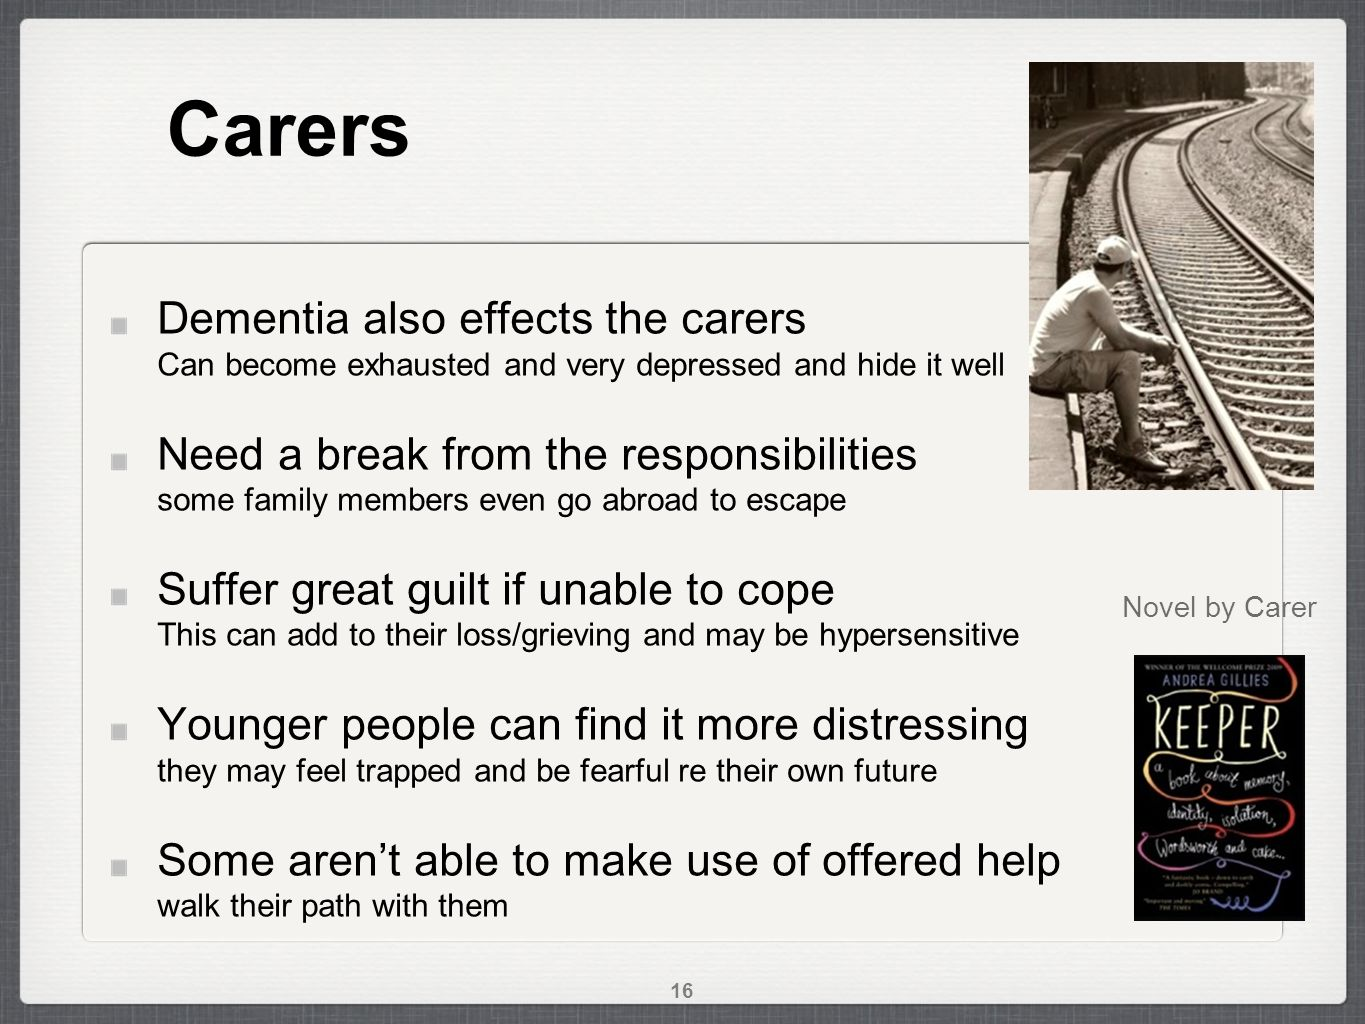 Carers Dementia also effects the carers Can become exhausted and very depressed and hide it well Need a break from the responsibilities some family members even go abroad to escape Suffer great guilt if unable to cope This can add to their loss/grieving and may be hypersensitive Younger people can find it more distressing they may feel trapped and be fearful re their own future Some aren't able to make use of offered help walk their path with them Novel by Carer 16